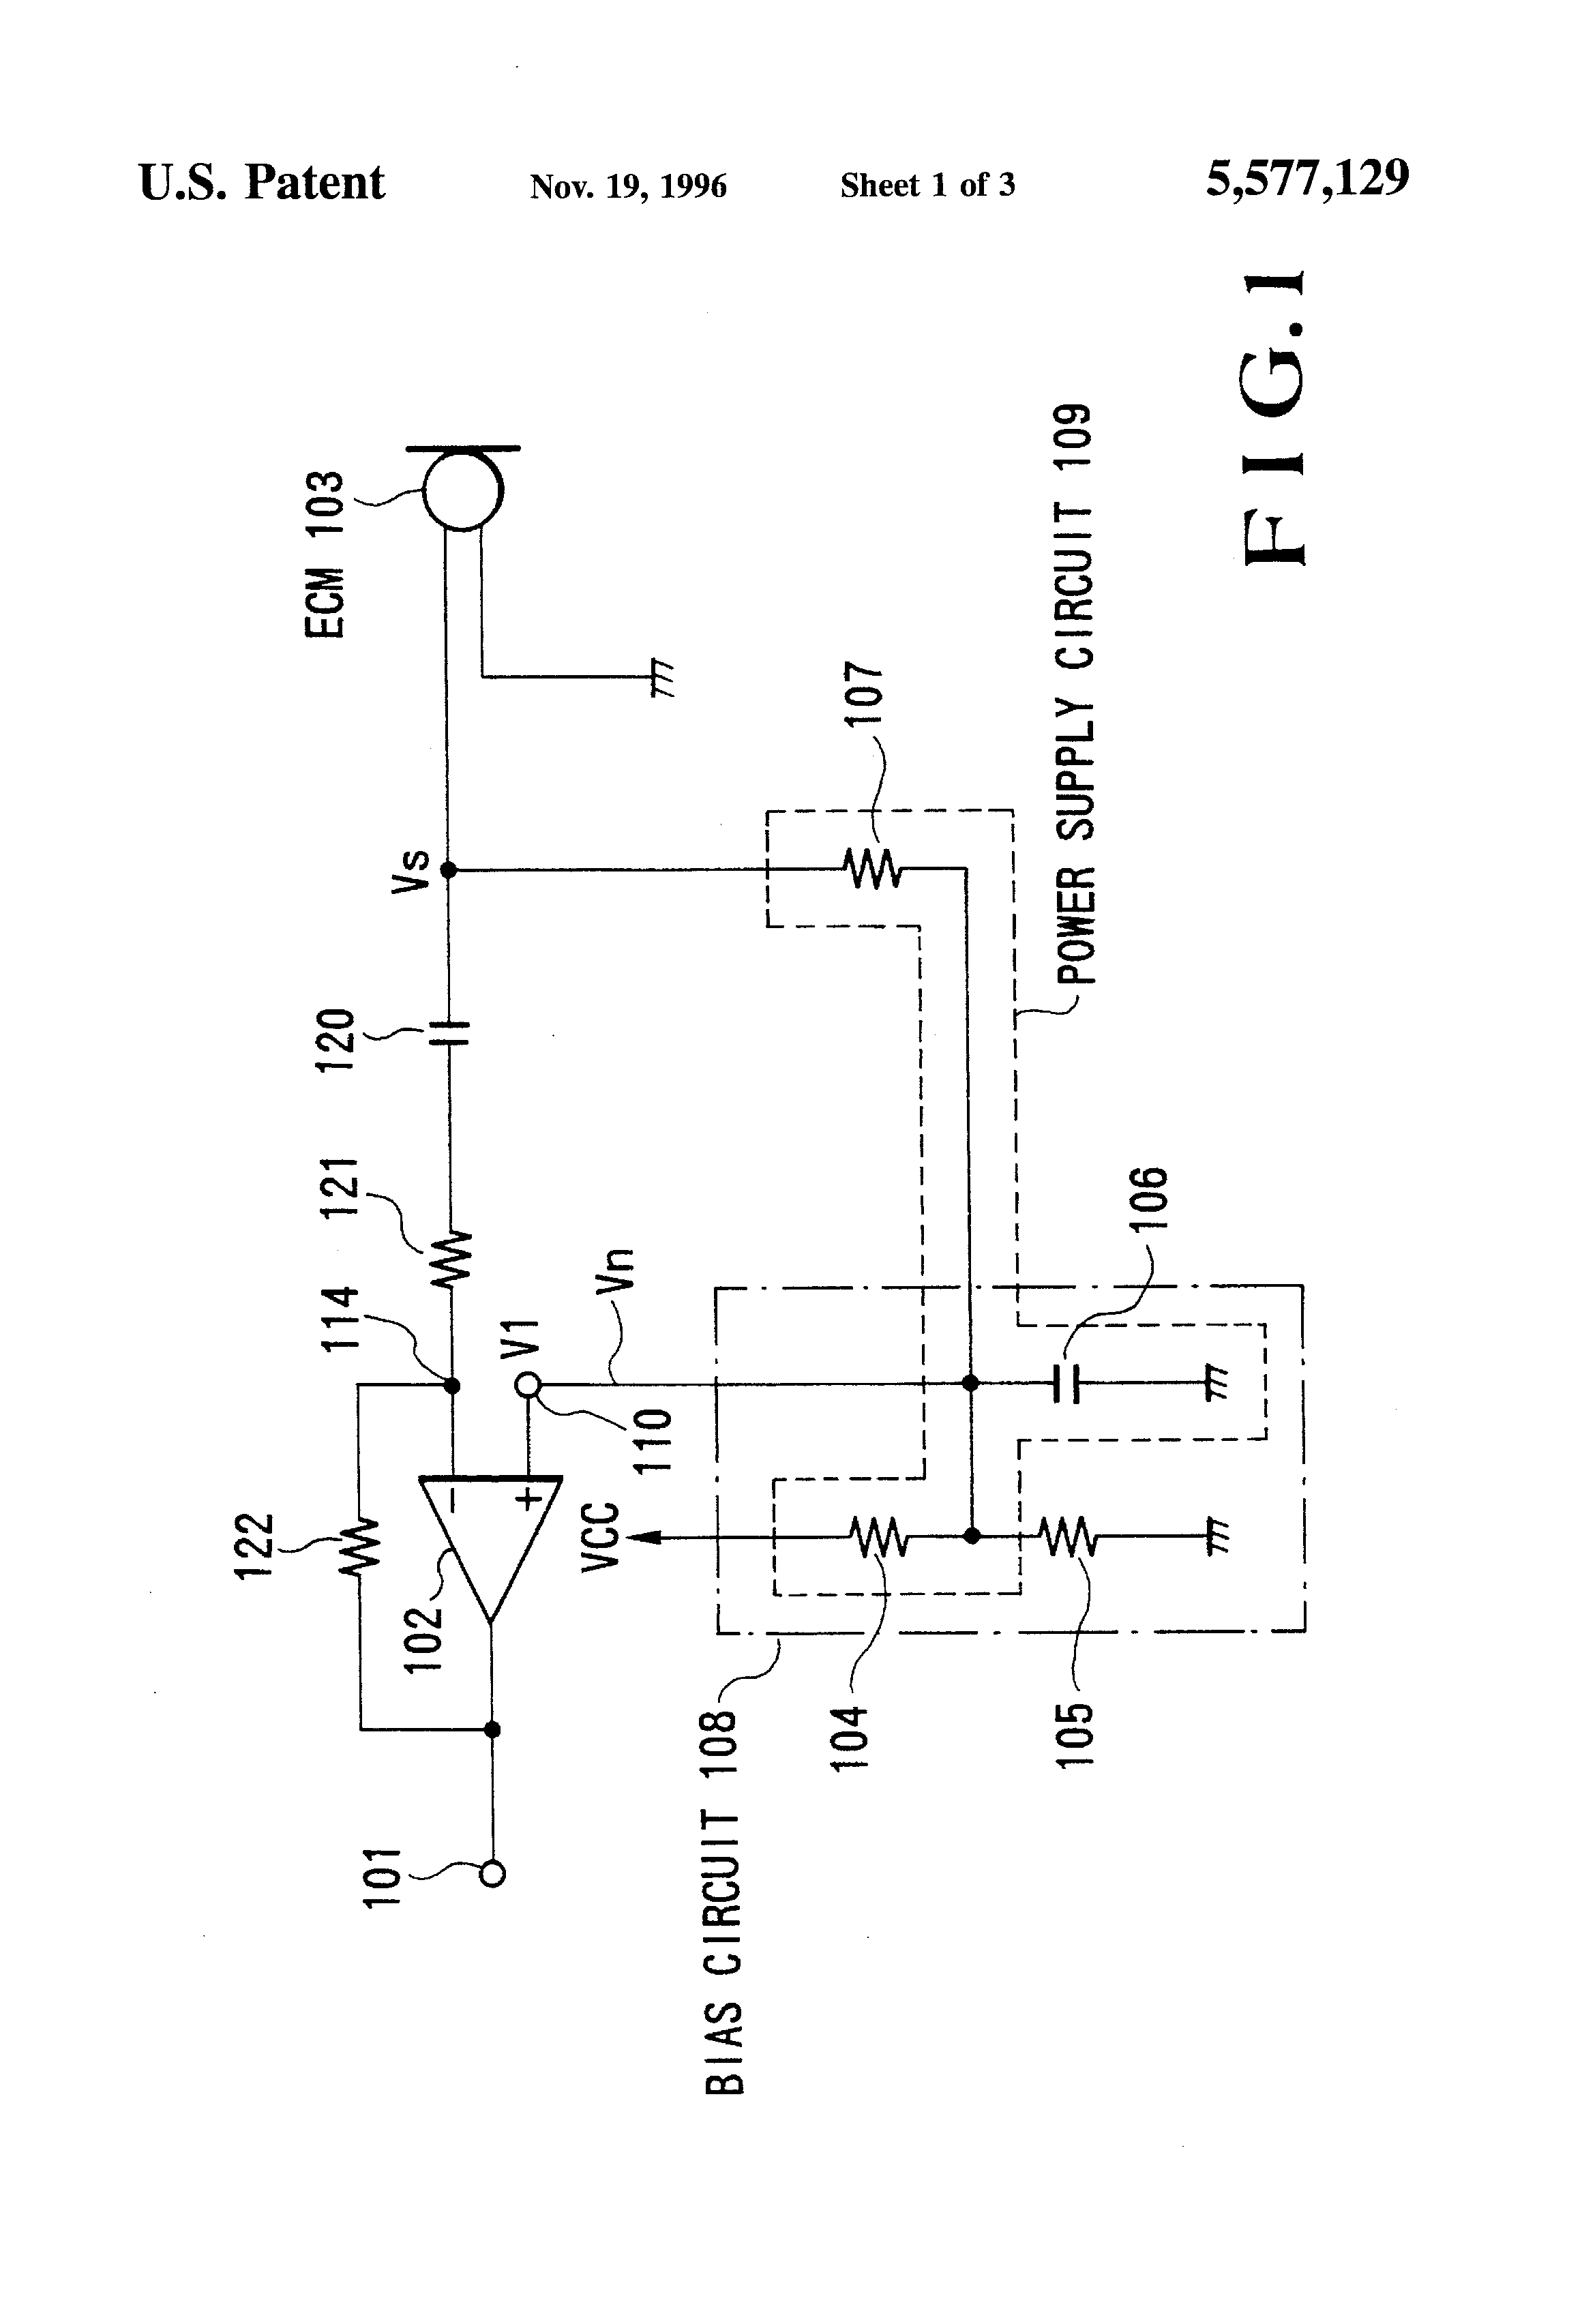 amplifier circuit for electret condenser microphone patent 5577129